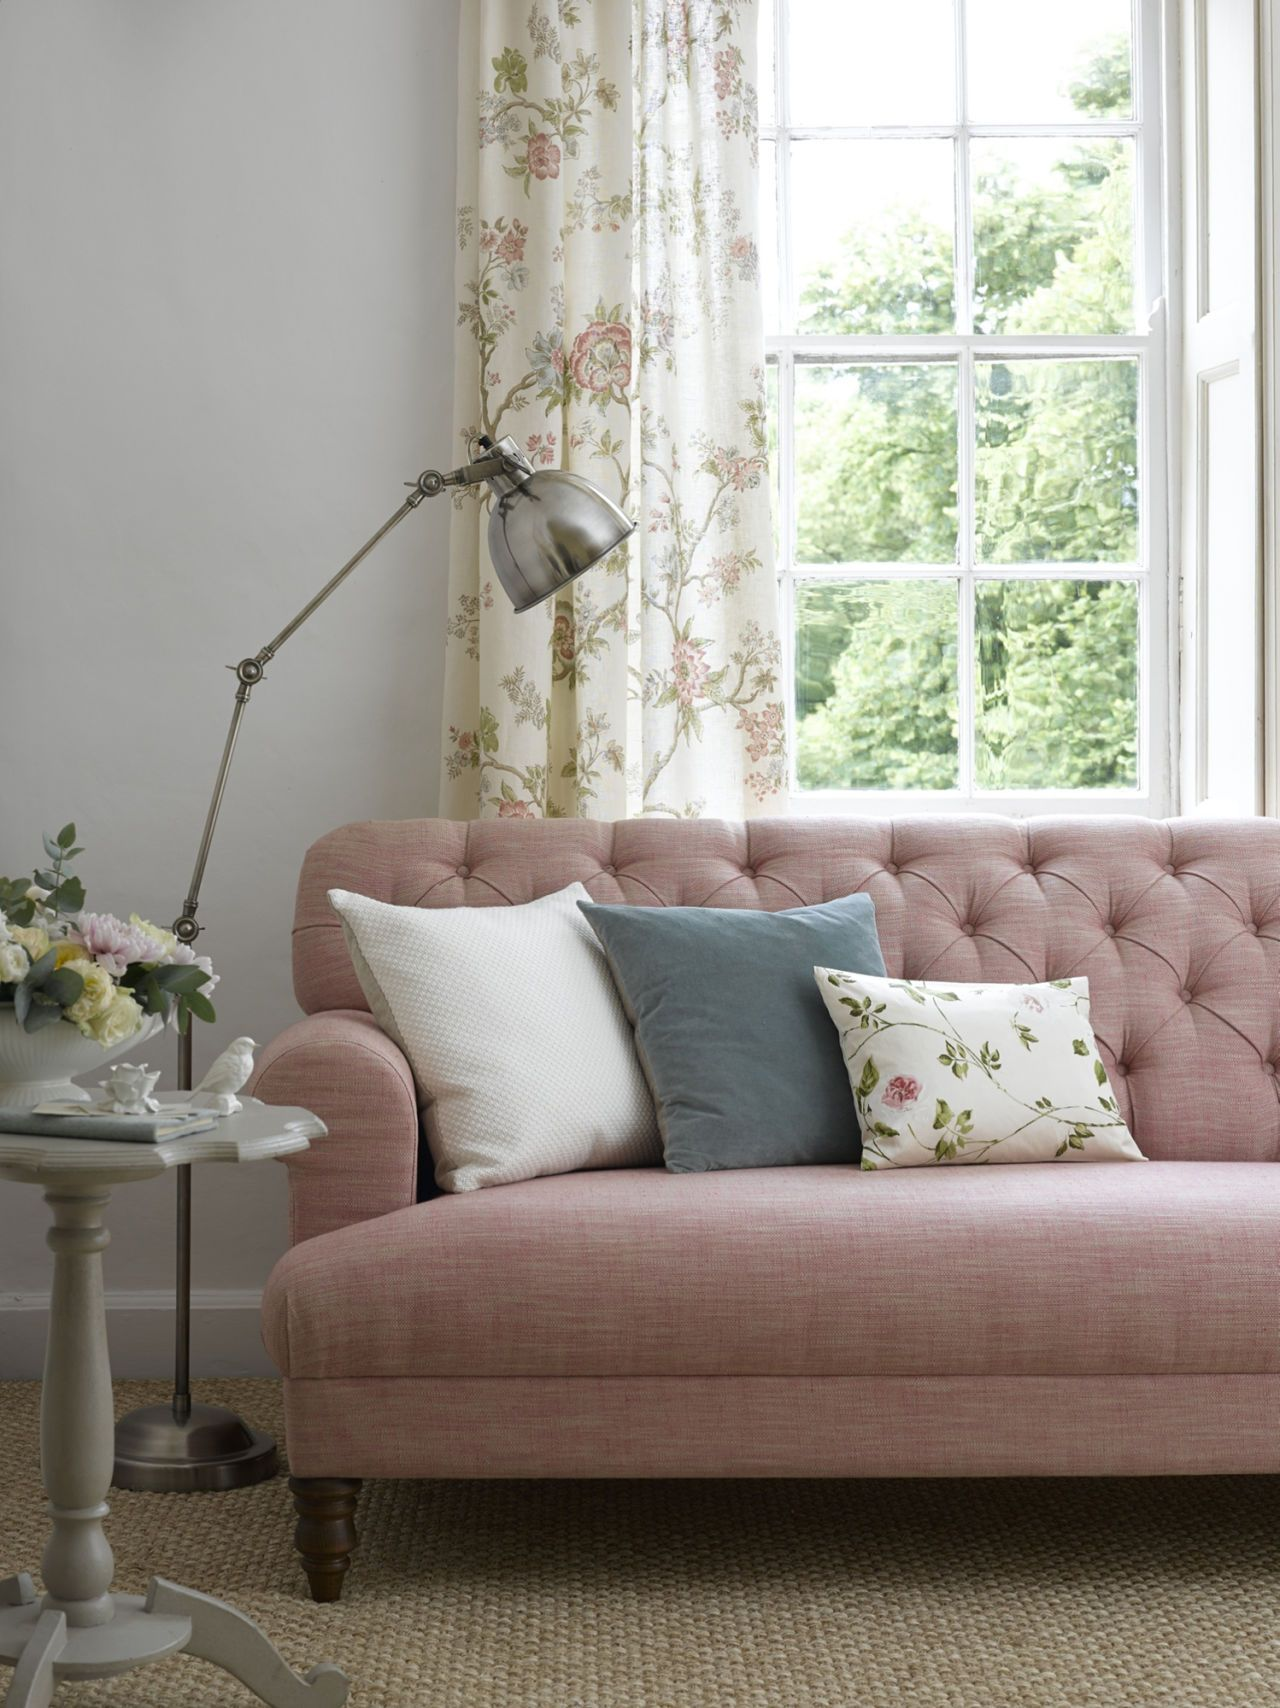 8 styling tricks to achieve the country cottage look in every room